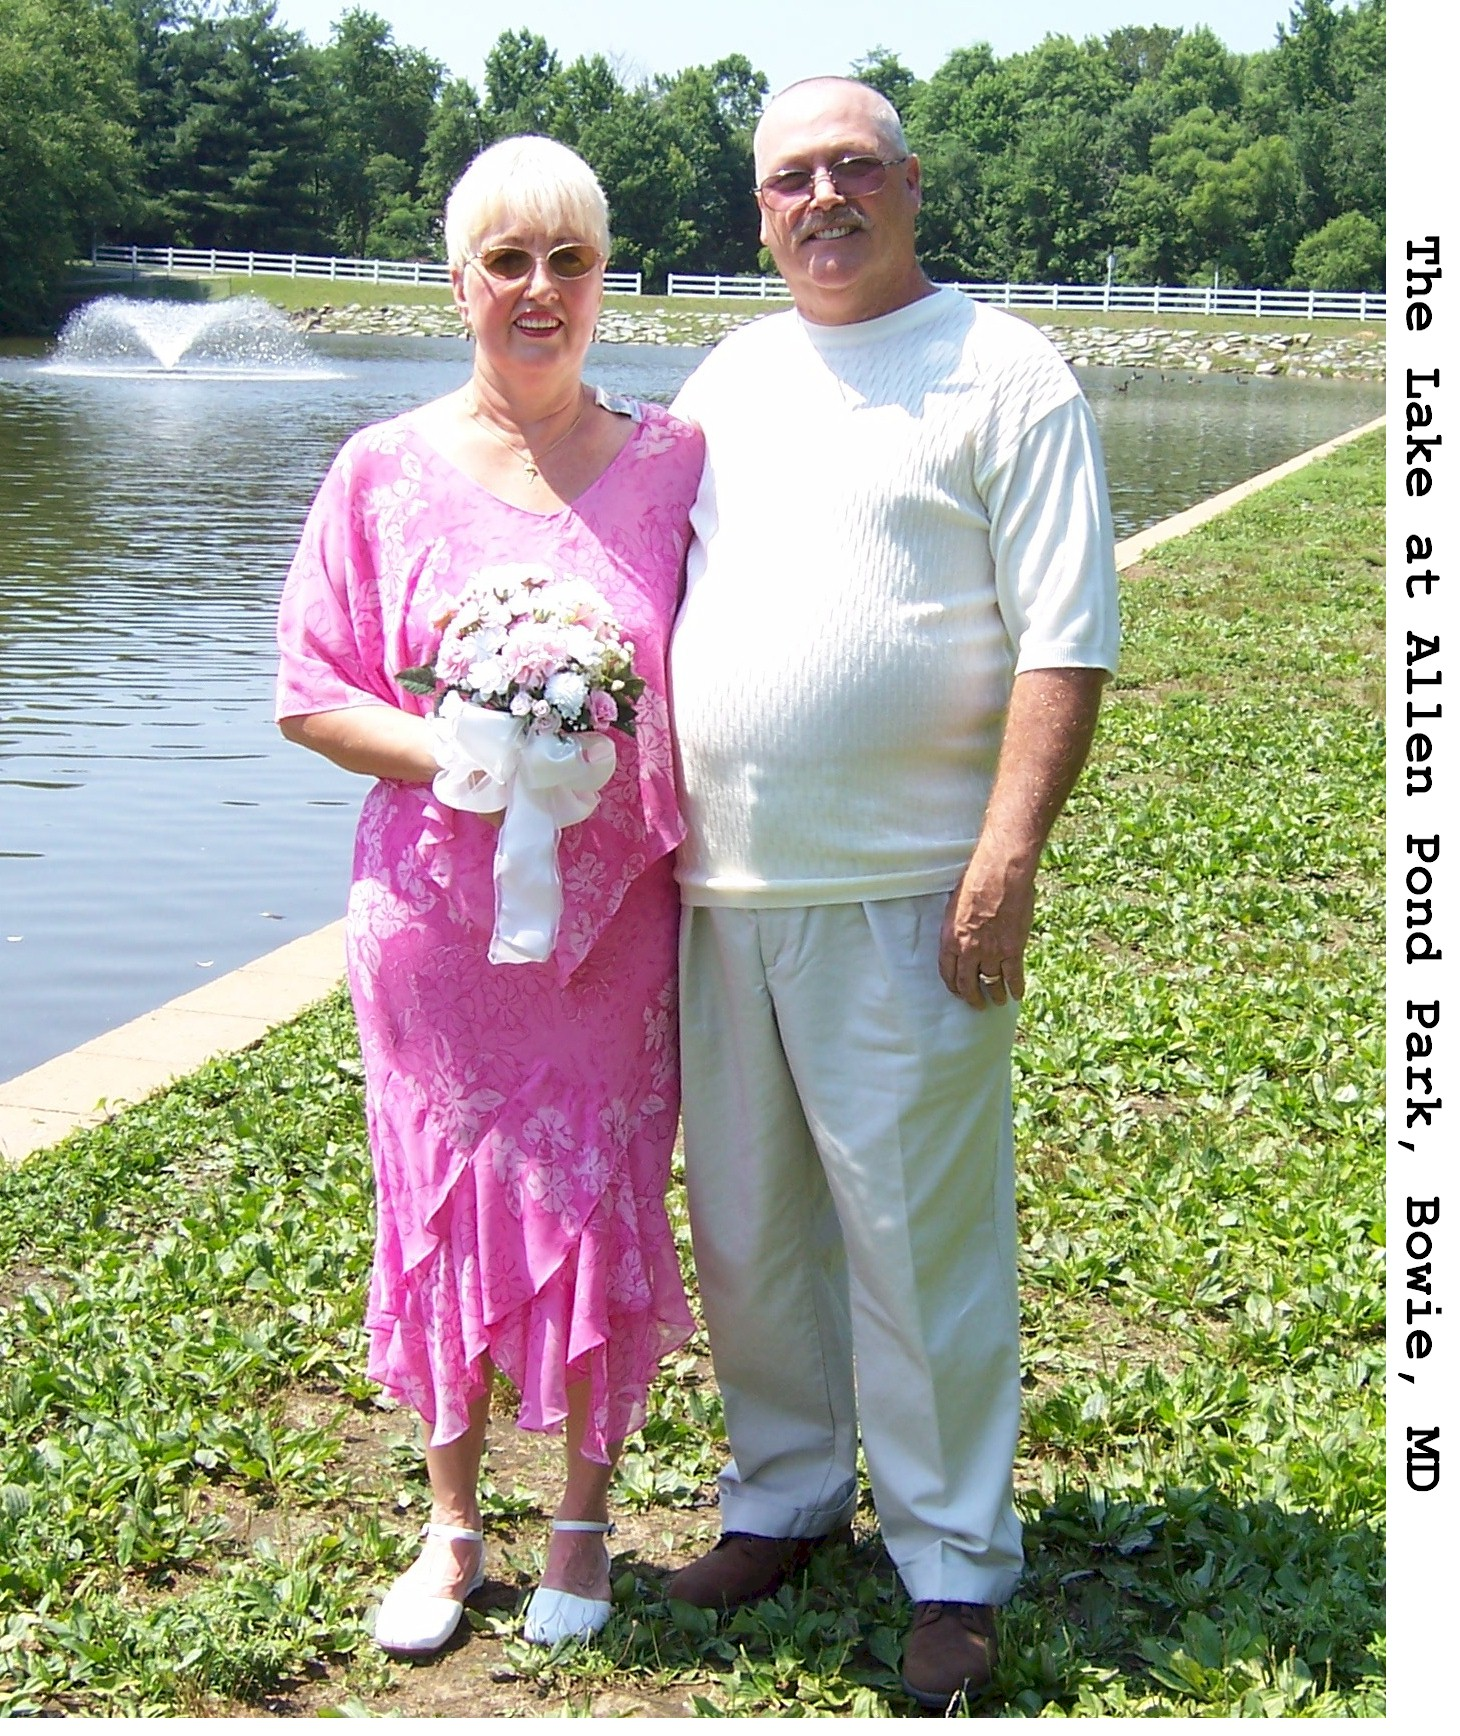 civil ceremonies lakeside weddings maryland wedding officiant justice of the peace md dc va